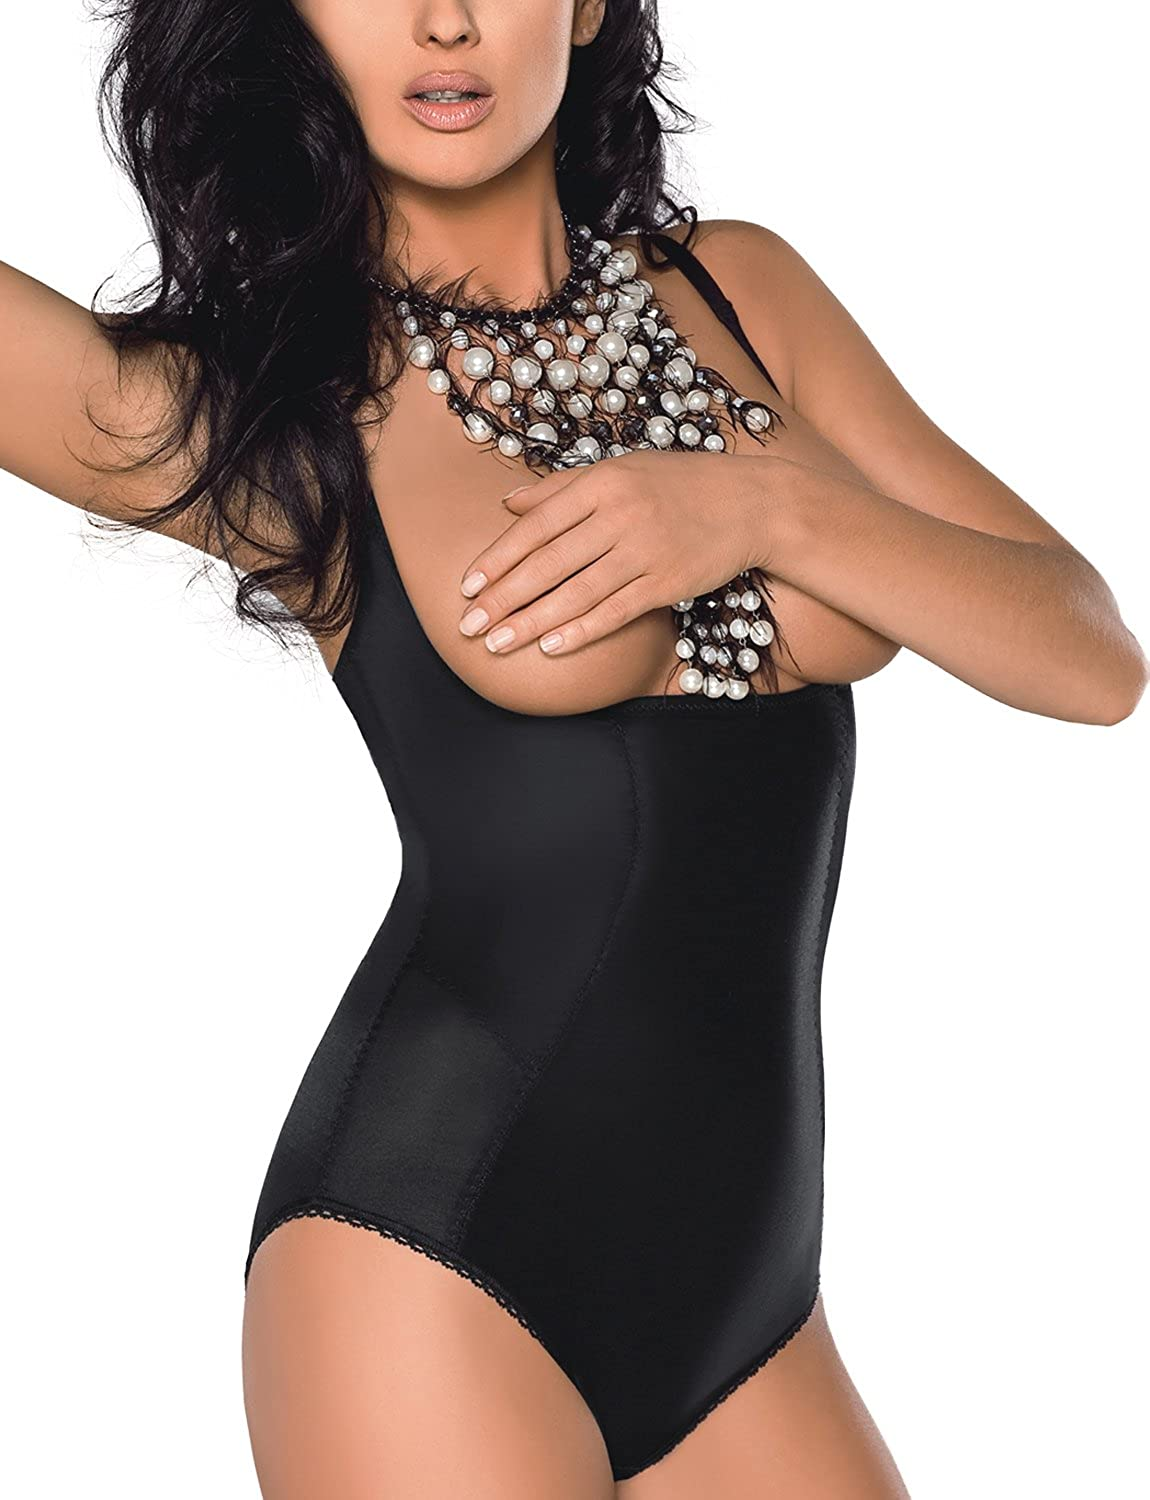 Gorsenia K148 Sanremo Shapewear Figurformender Body, Regulierbare Träger, Top Qualität, Made In EU